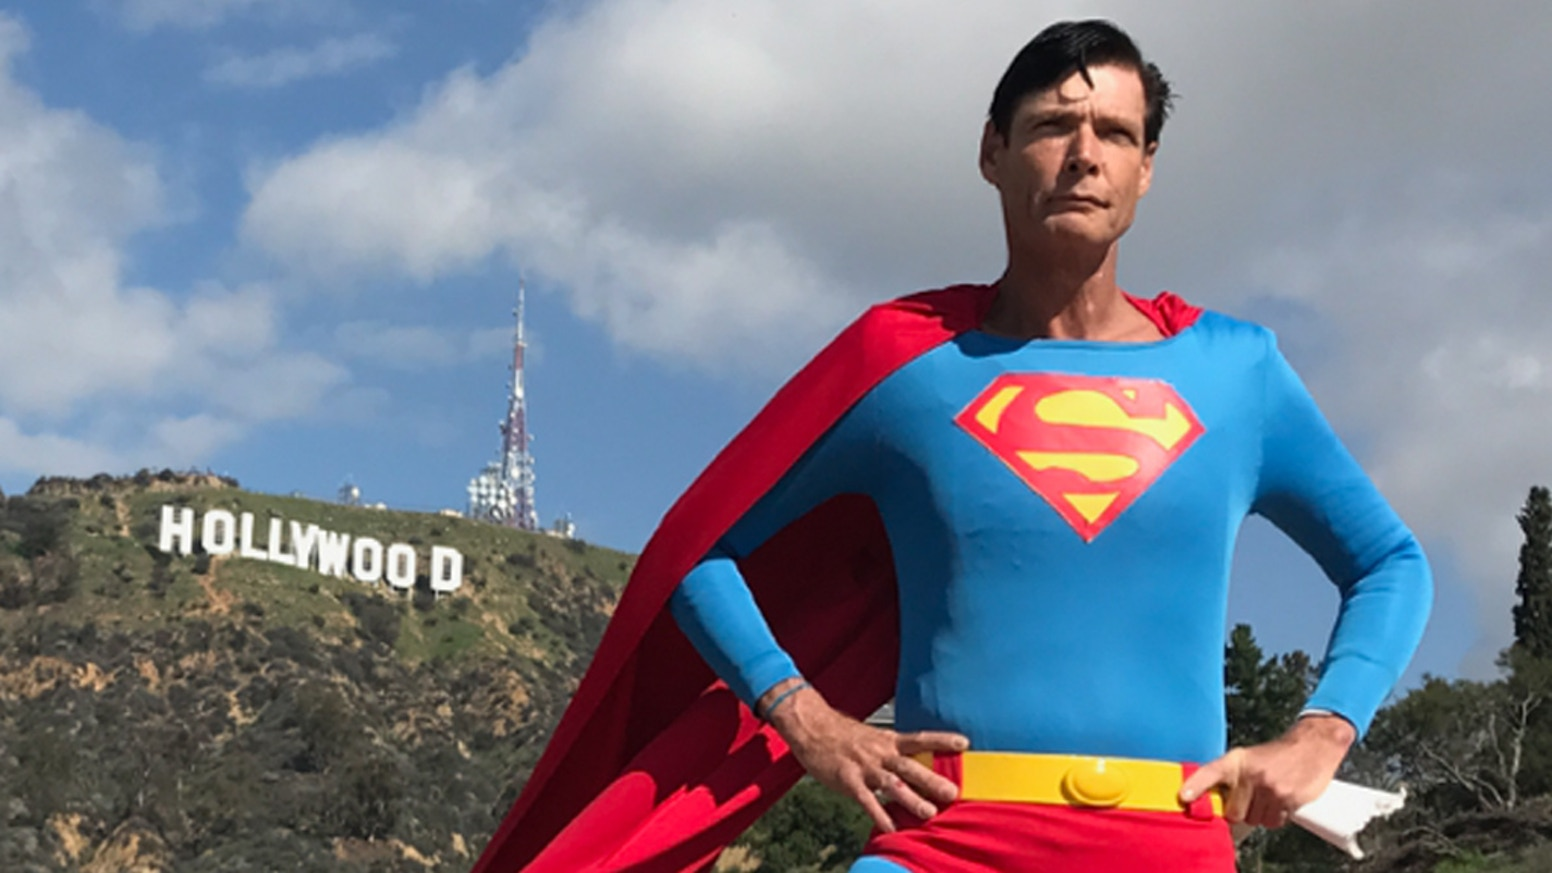 'Hollywood Superman' Cause Of Death Revealed By LA County Coroner